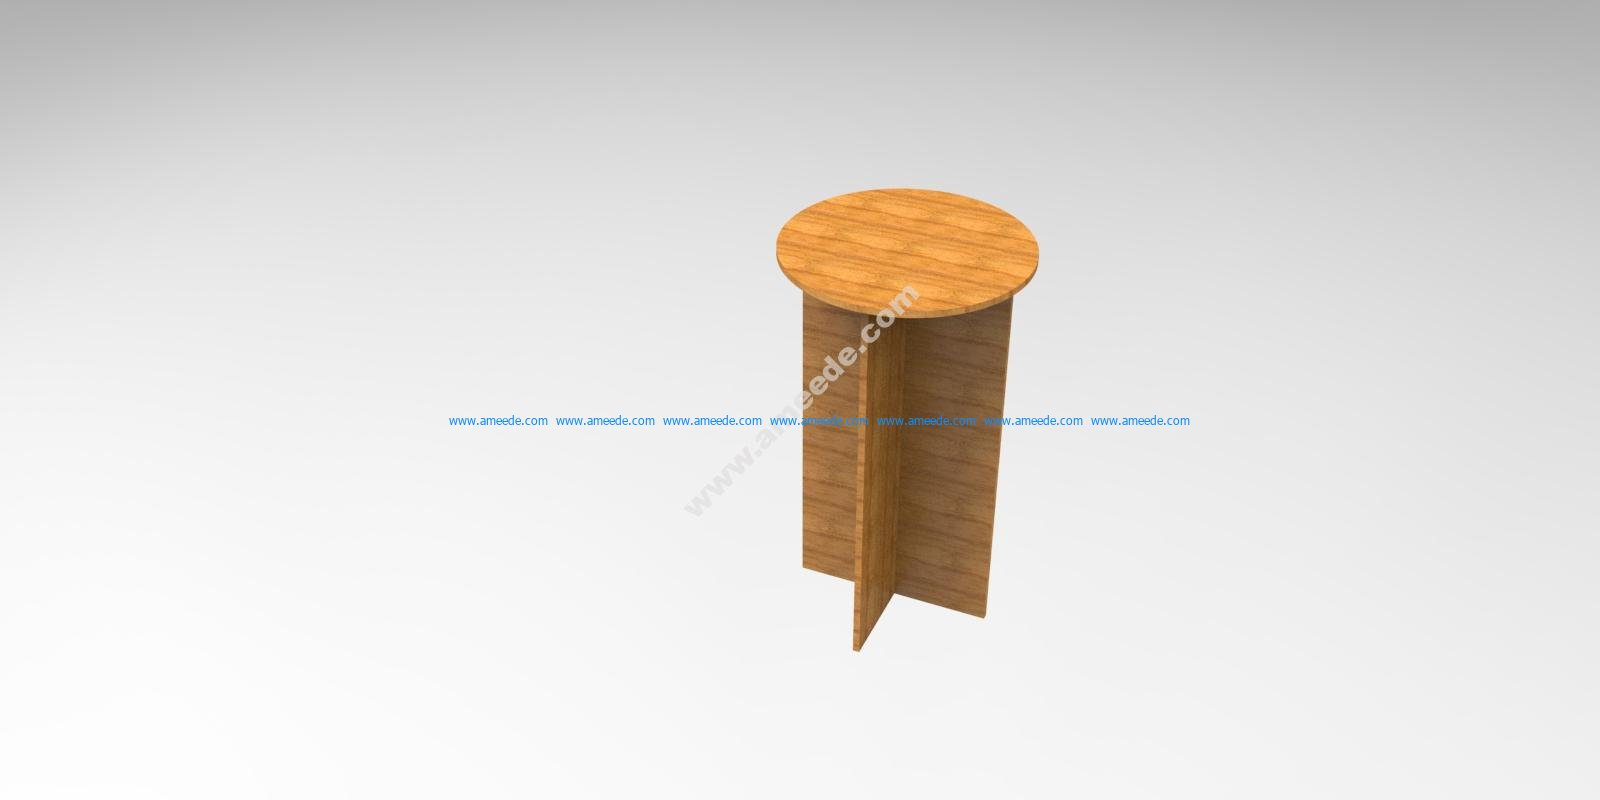 10 Mm Mdf Chair Stool